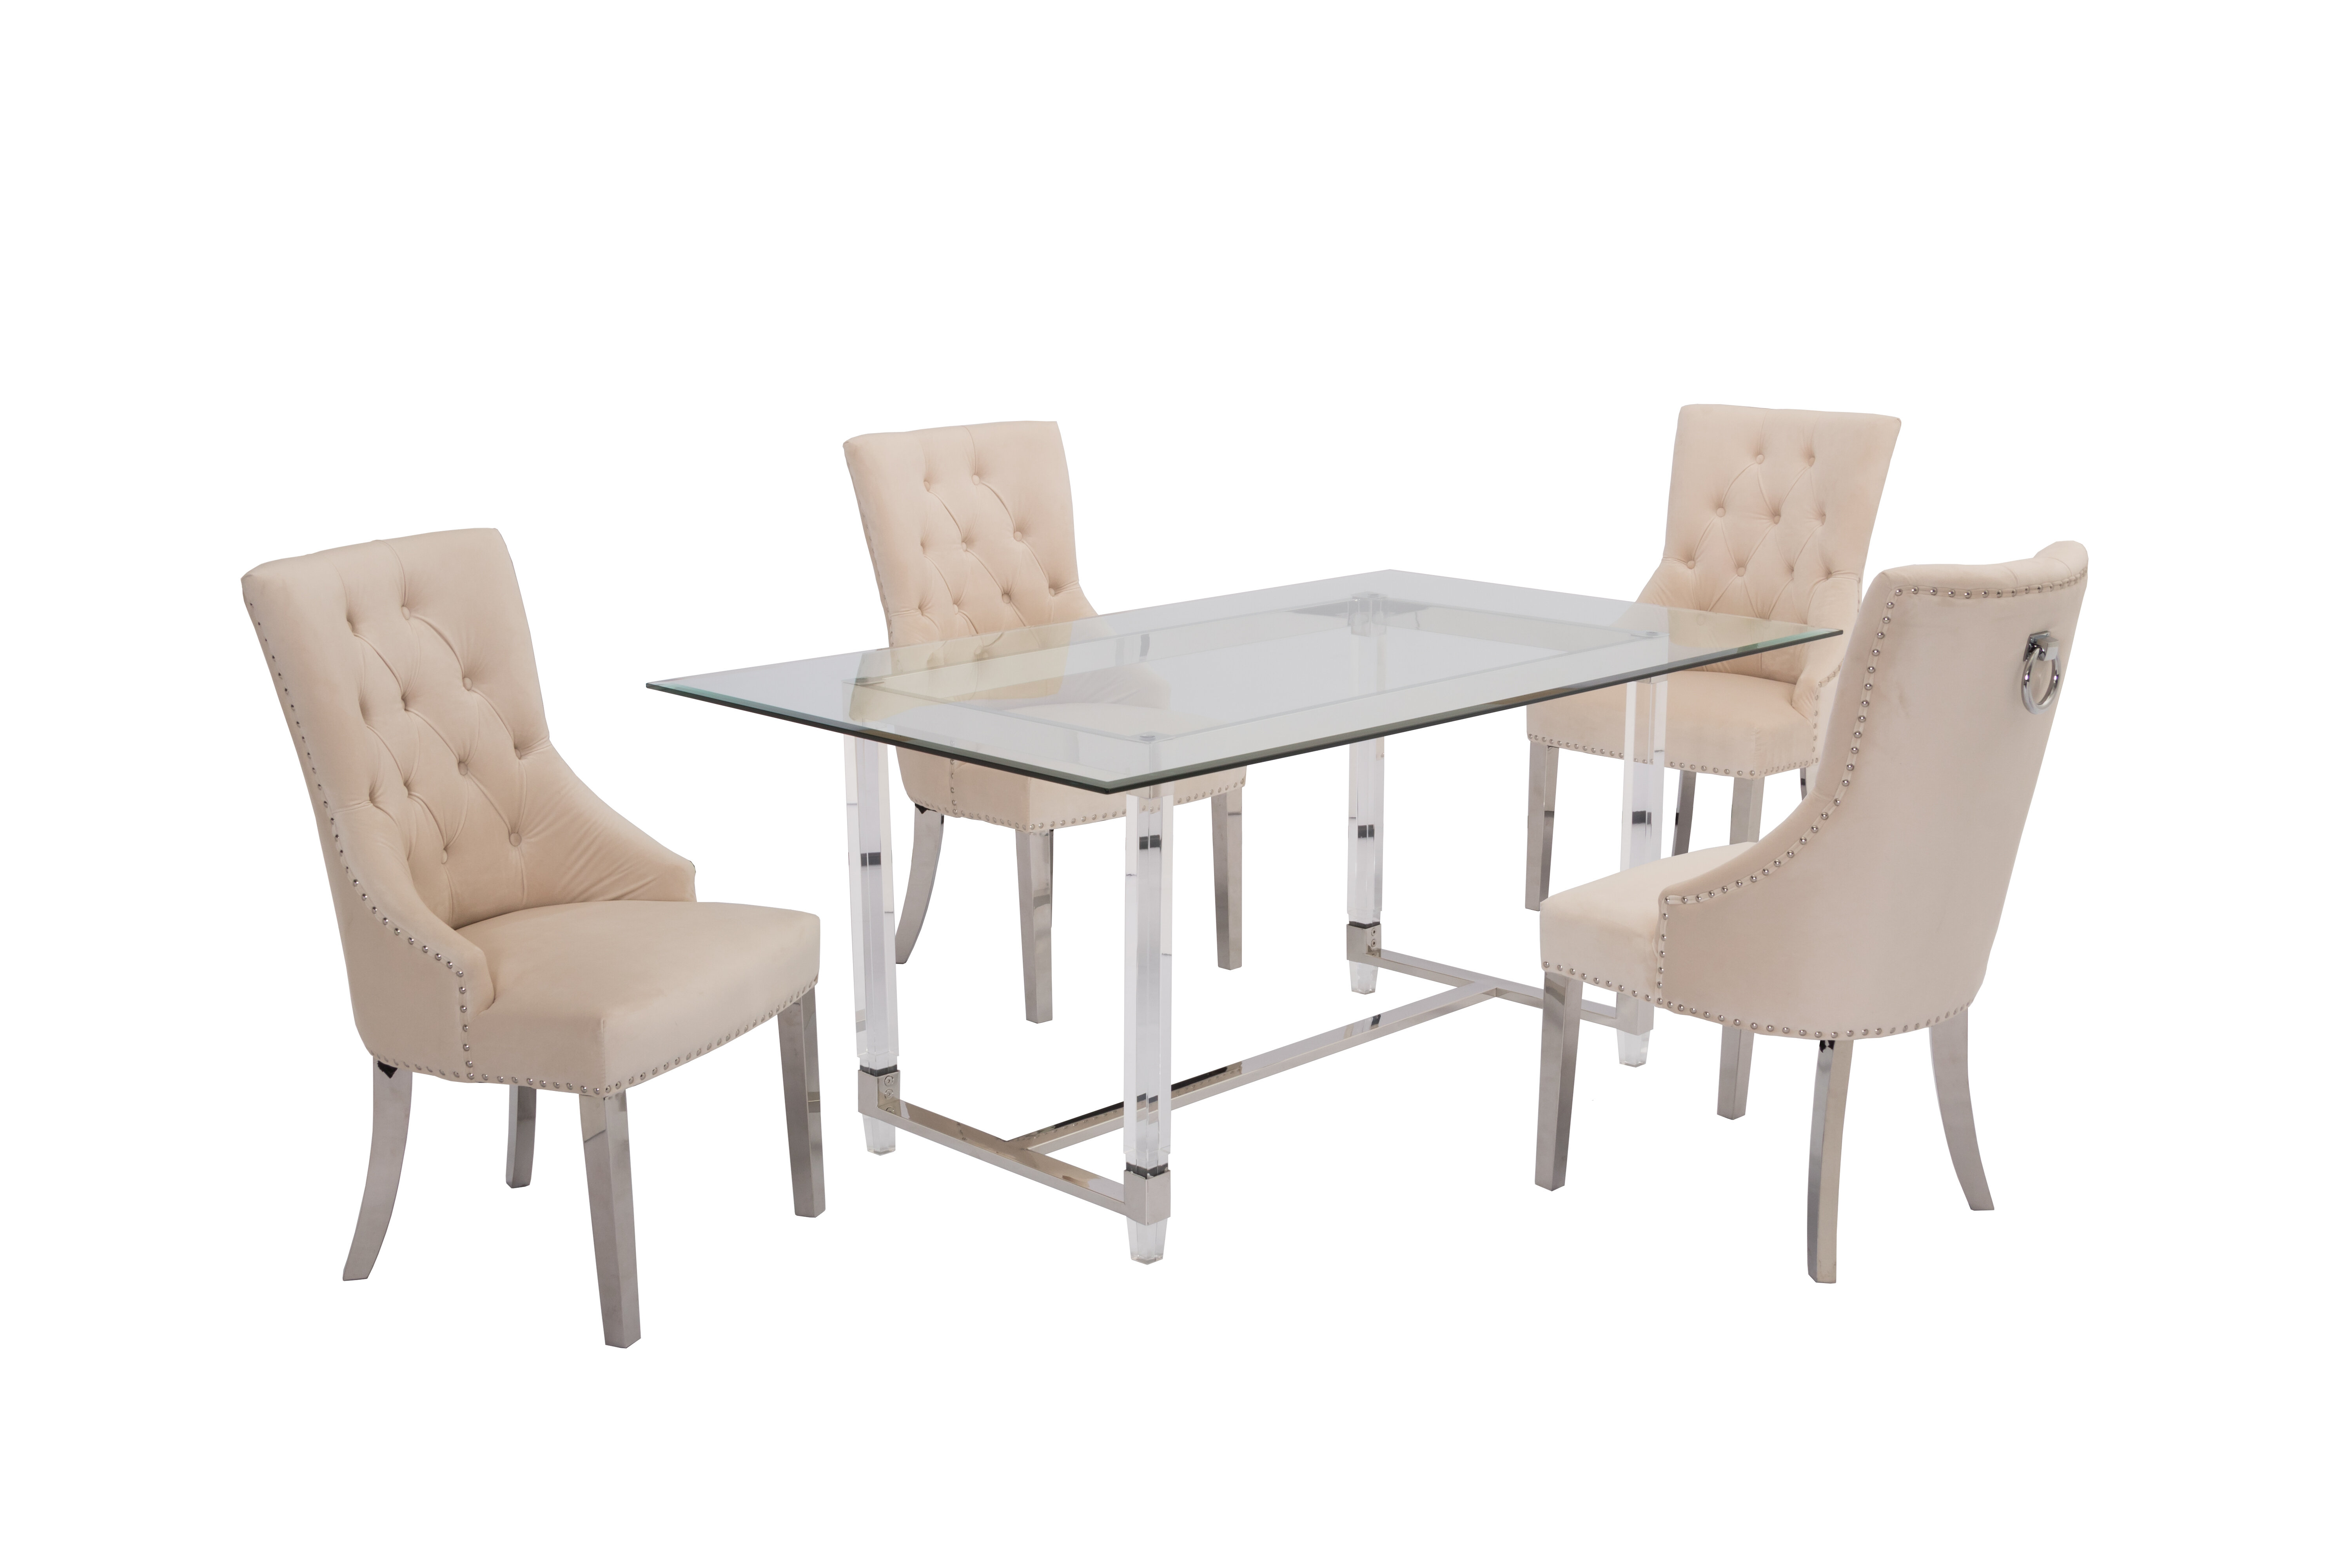 Beige Glam Kitchen Dining Room Sets You Ll Love In 2021 Wayfair